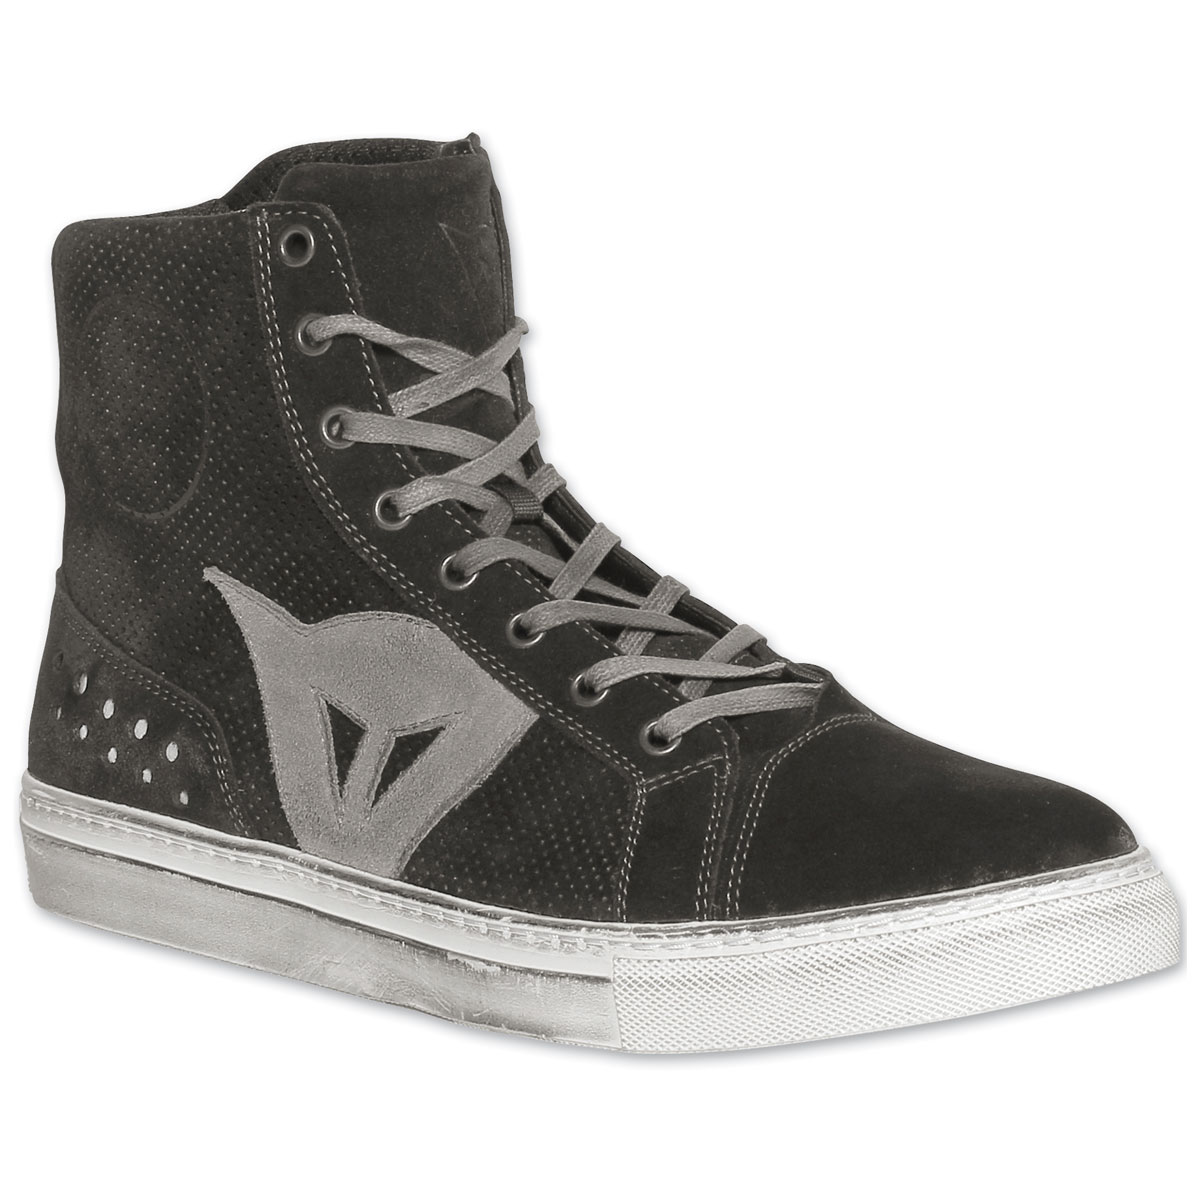 Dainese Men's Street Biker Air Black/Anthracite Shoes